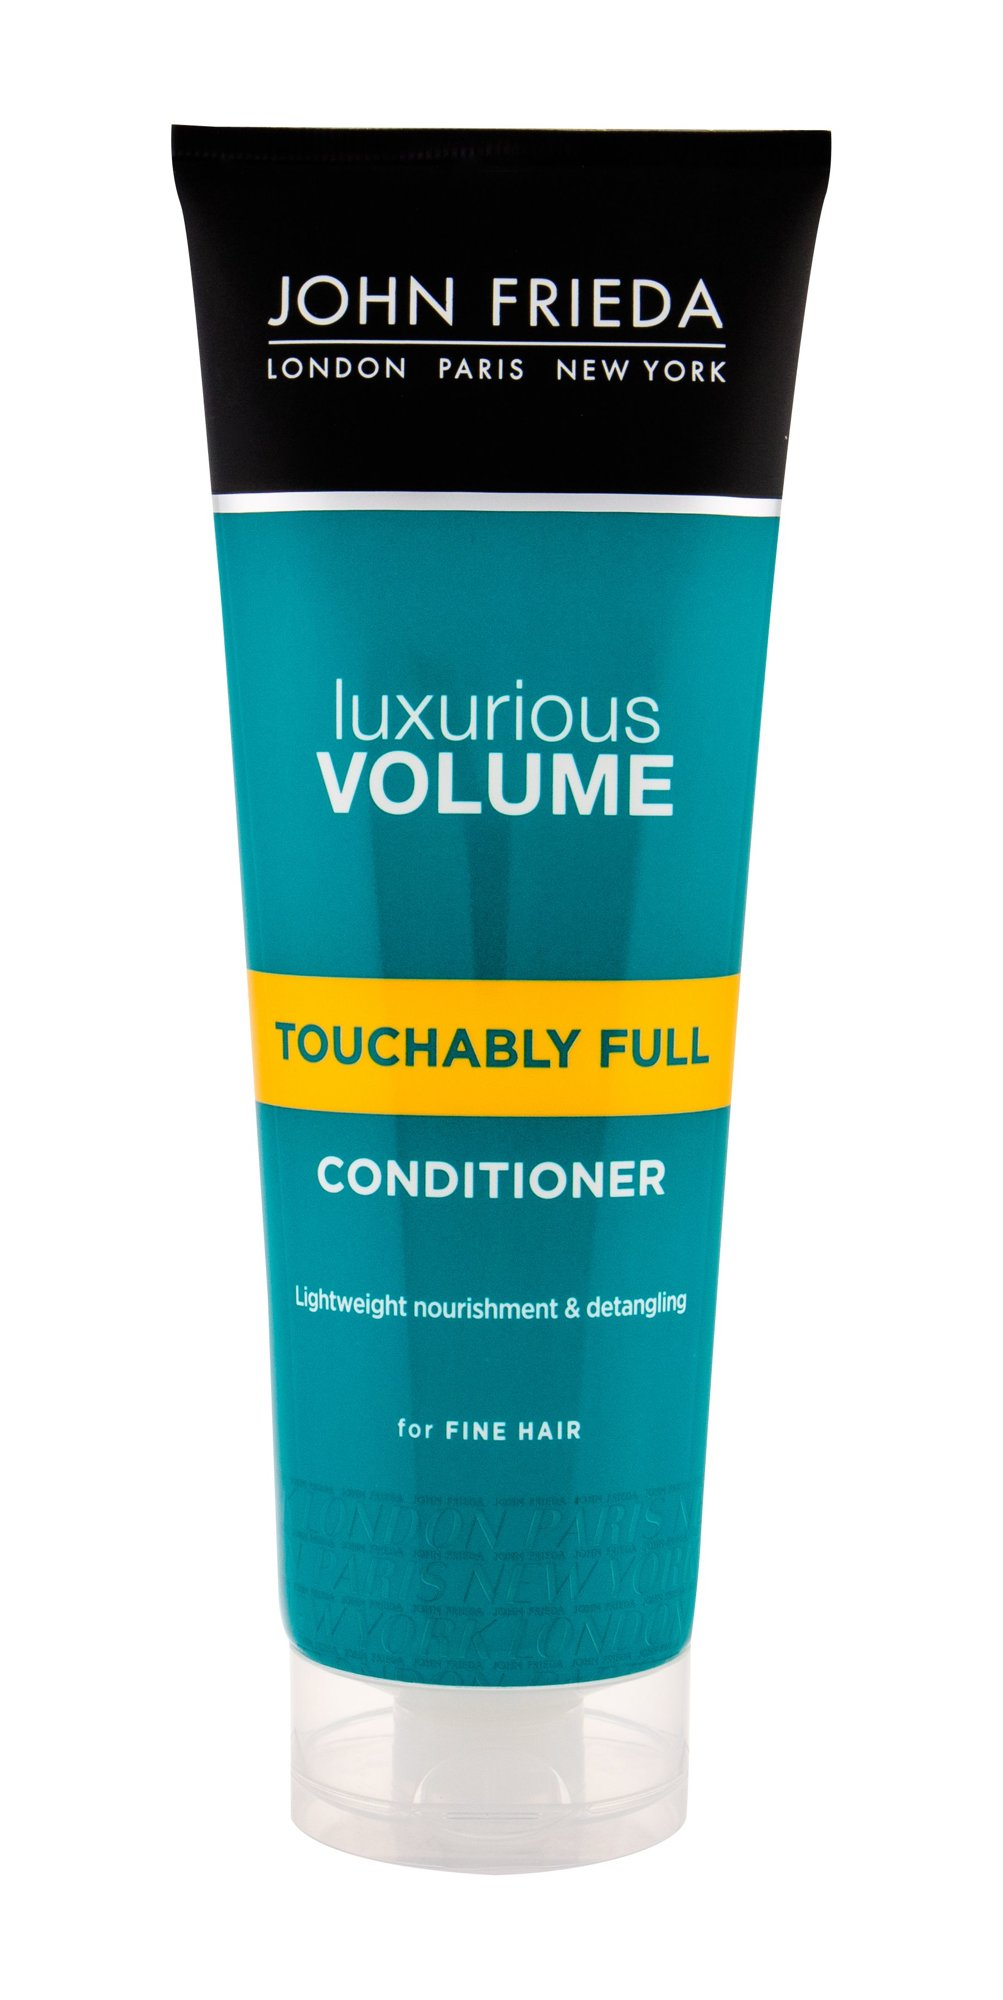 John Frieda Luxurious Volume Conditioner 250ml